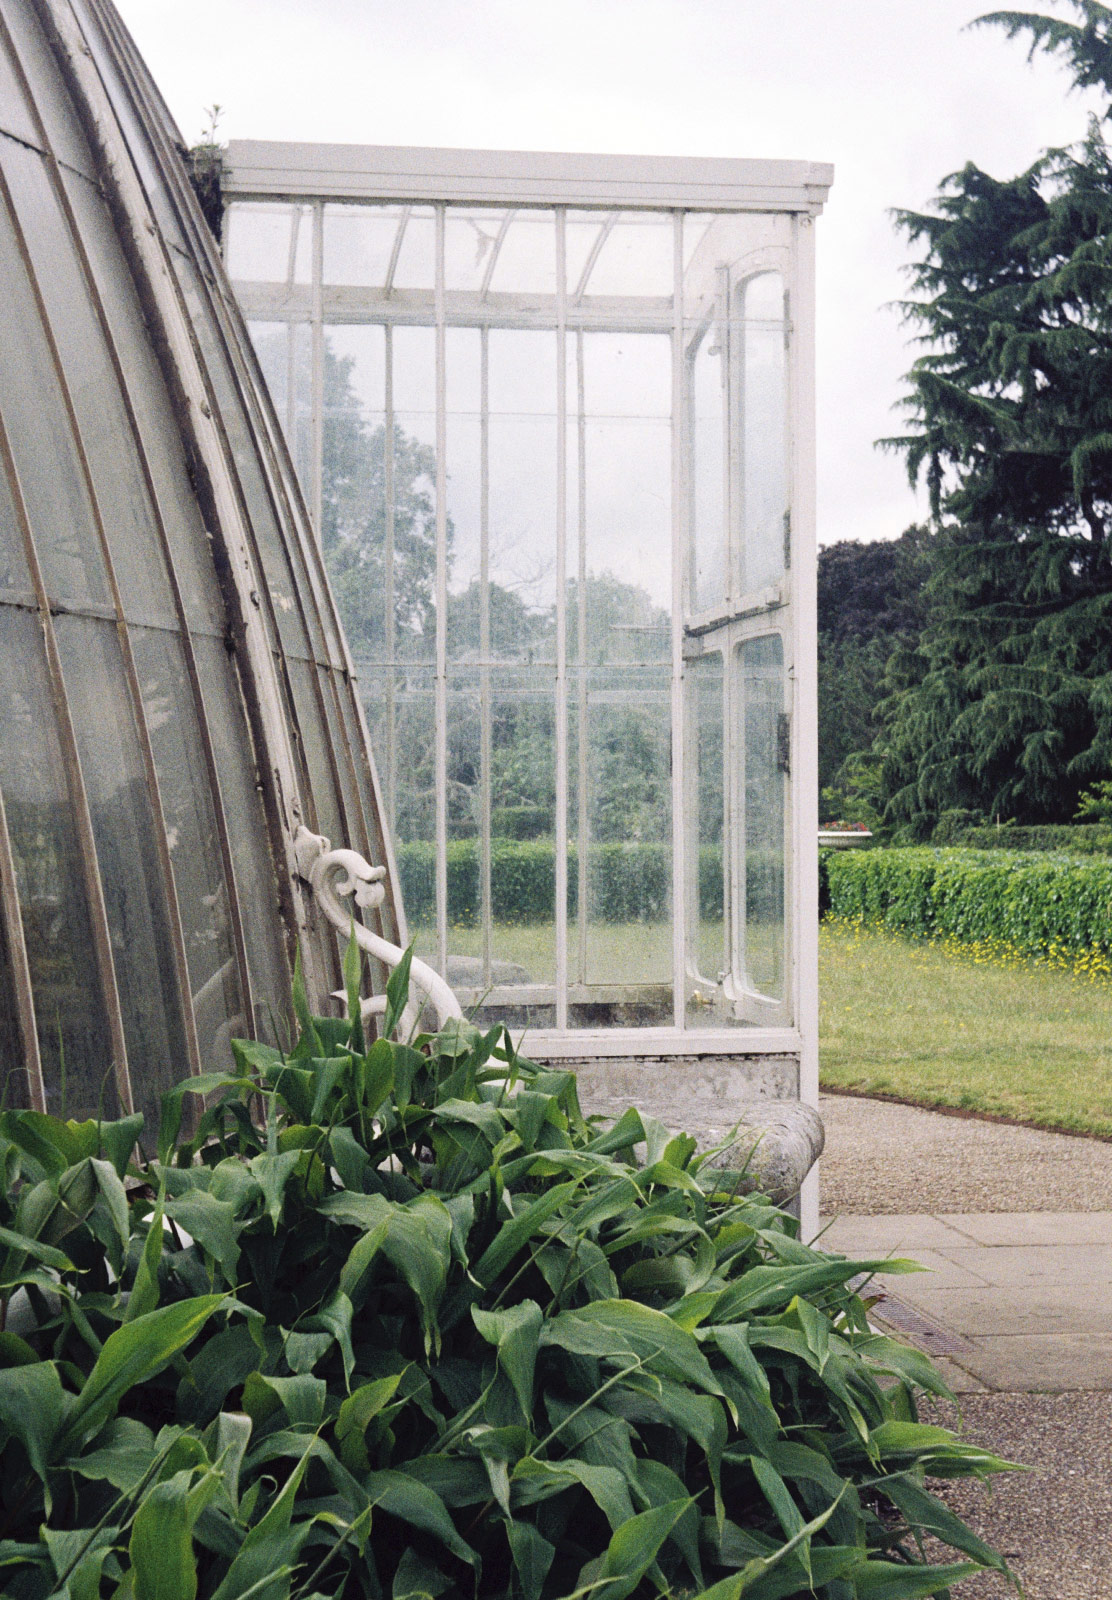 Glasshouse entrance